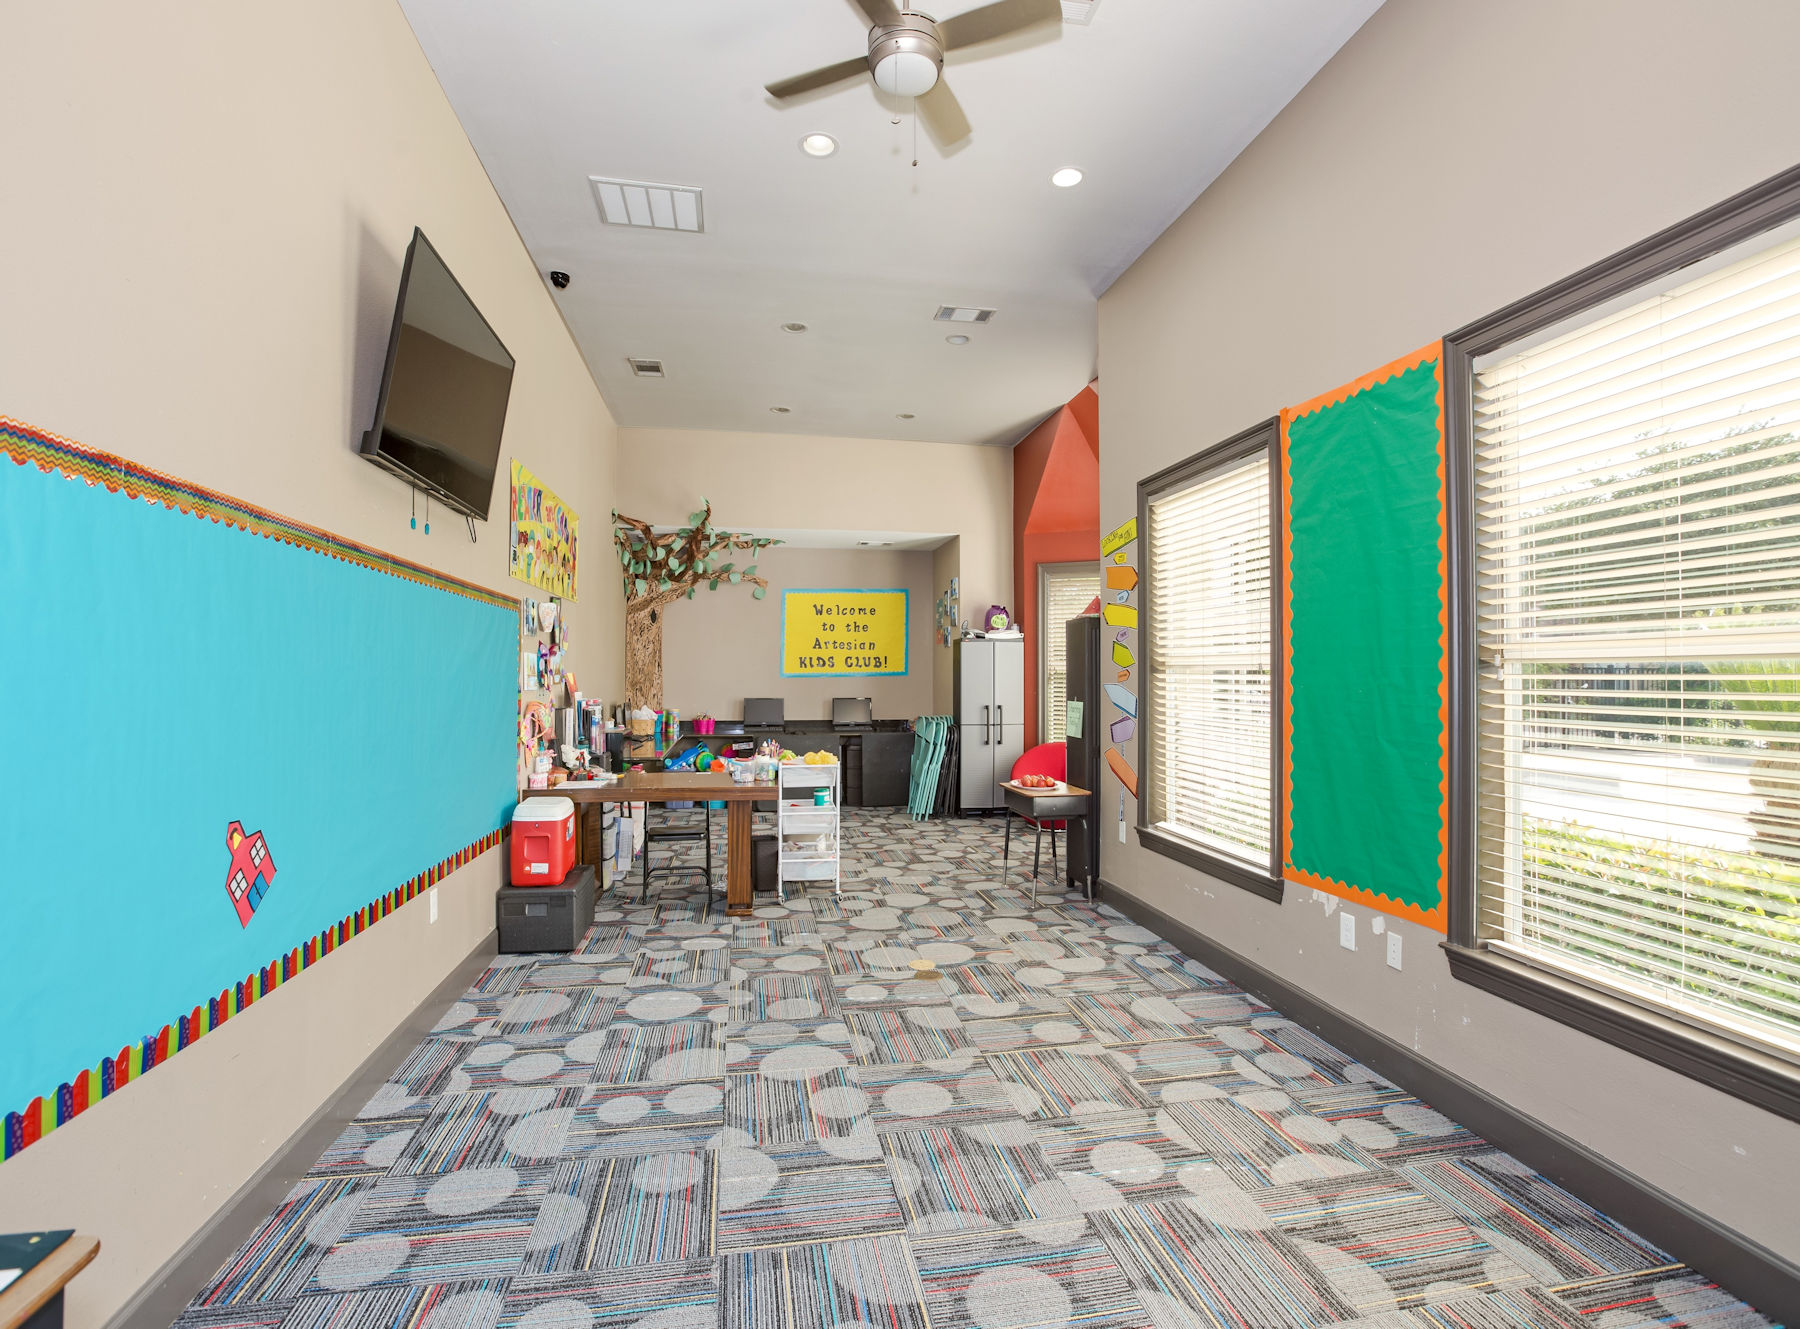 Project access room with windows, TV, chalkboard, and tables, the perfect environment to foster learning.